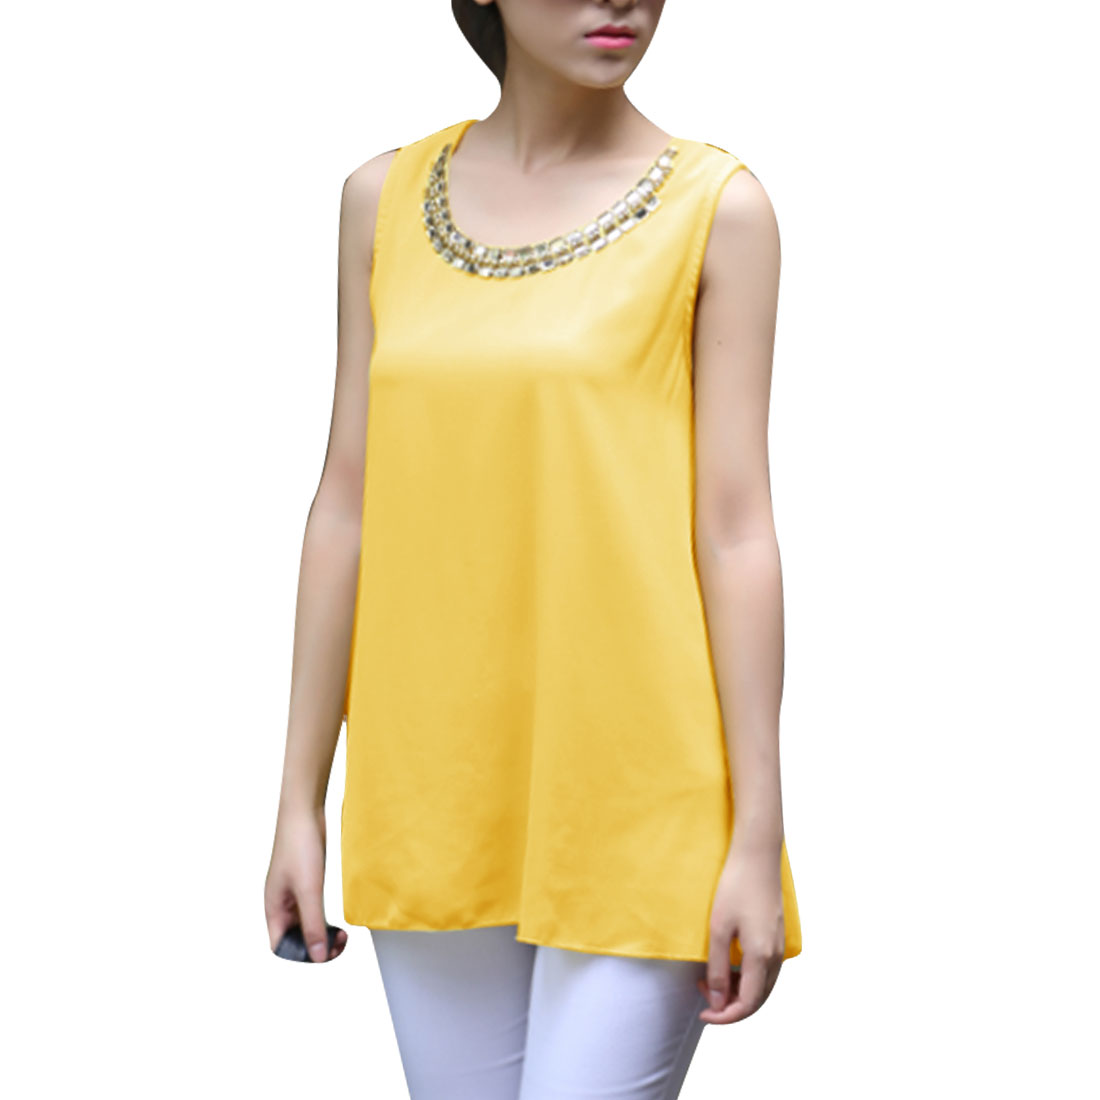 Women Sleeveless Chiffon Rhinestone Casual Tank Tops Yellow S